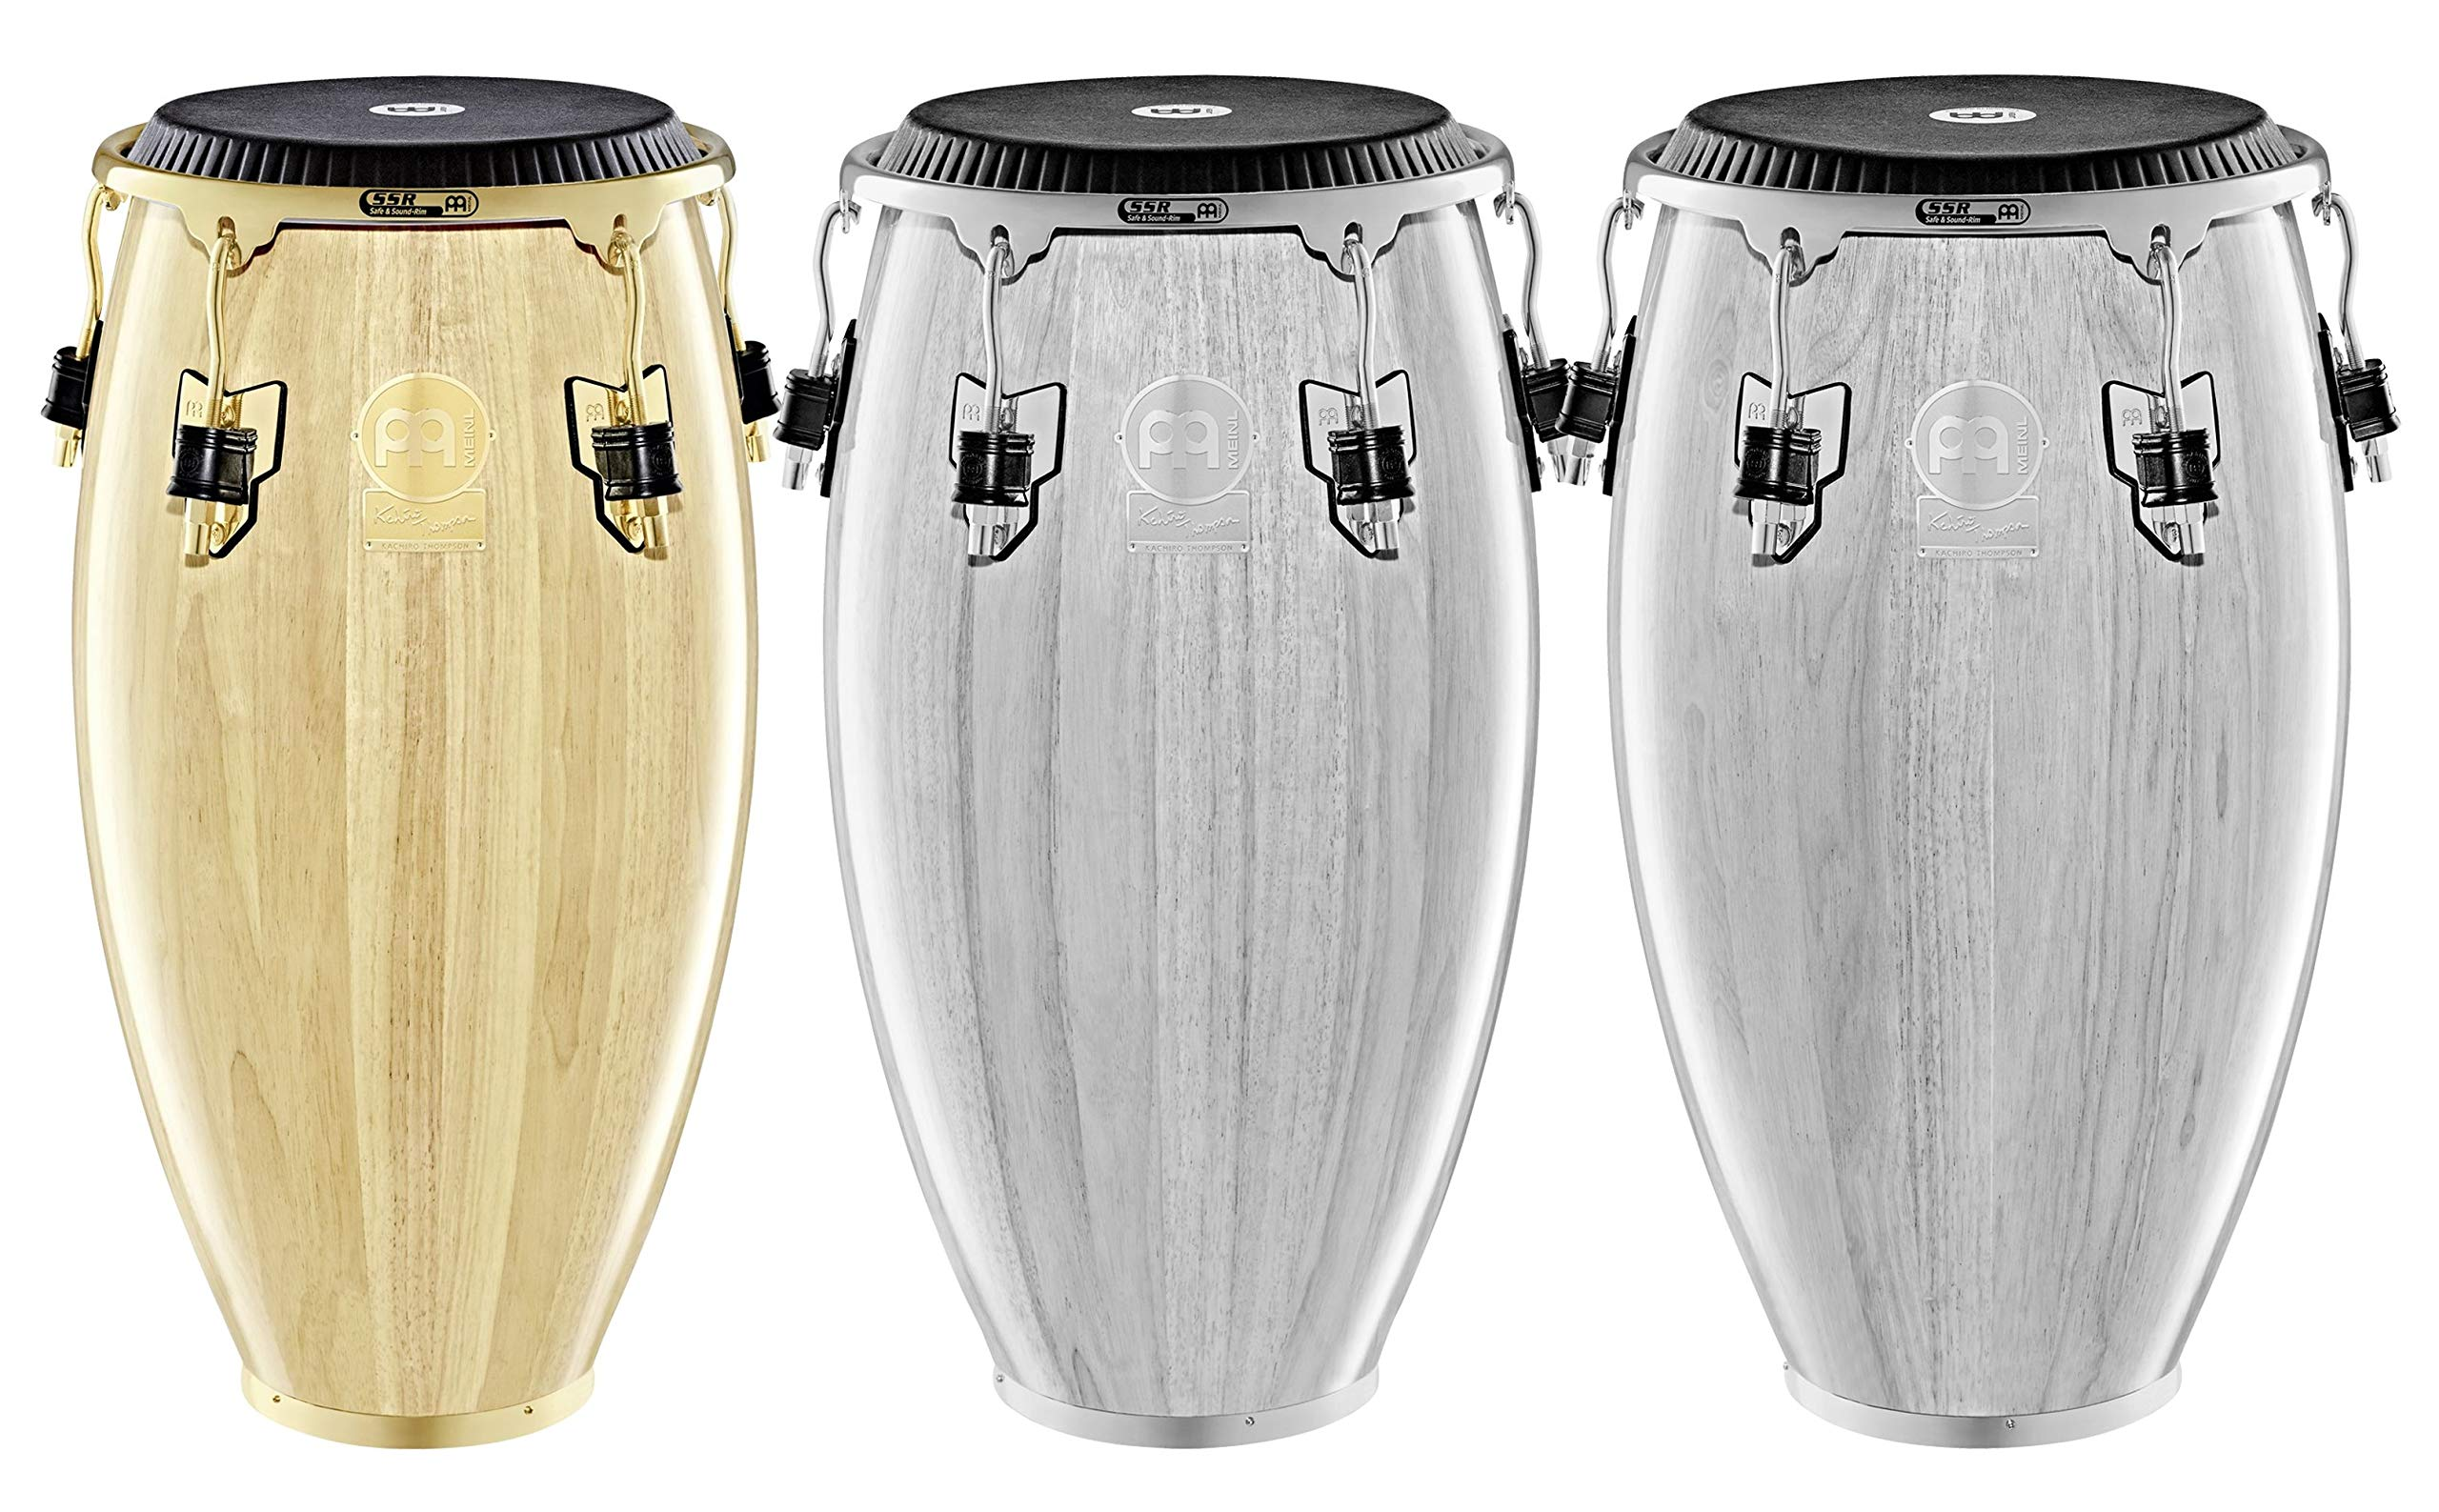 Meinl Percussion Conga with Hardwood Shell, Artist Series Kachiro Thompson-NOT MADE IN CHINA-Natural Finish, 11'' REMO Black Fiberskyn Head, 2-YEAR WARRANTY (WKTR11NT) by Meinl Percussion